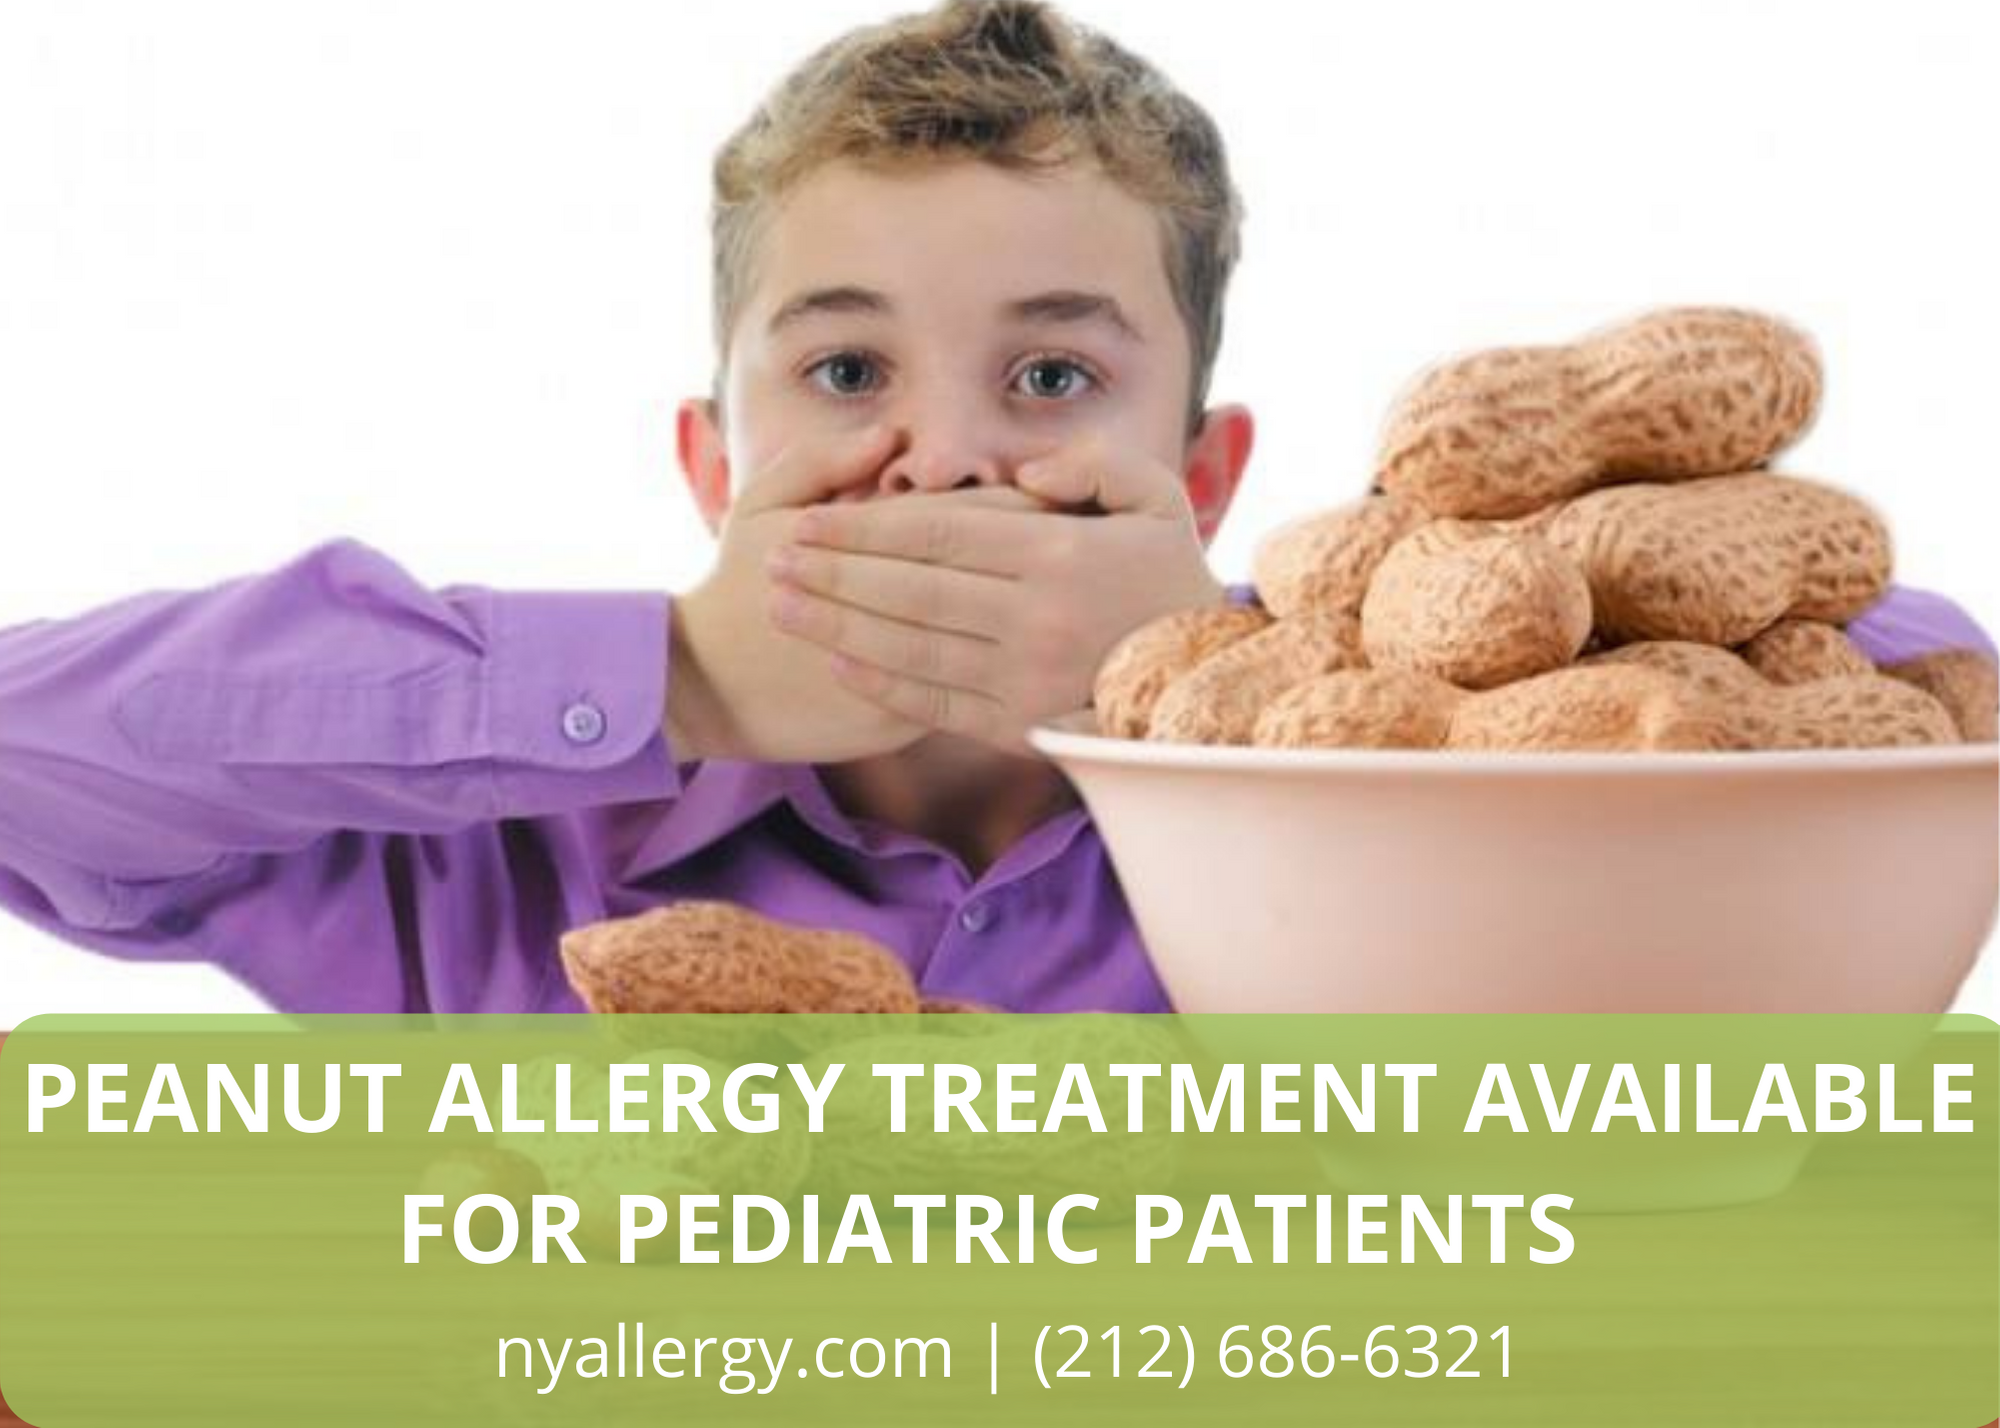 What You Need to Know About the FDA Peanut Allergy Treatment Feature Image